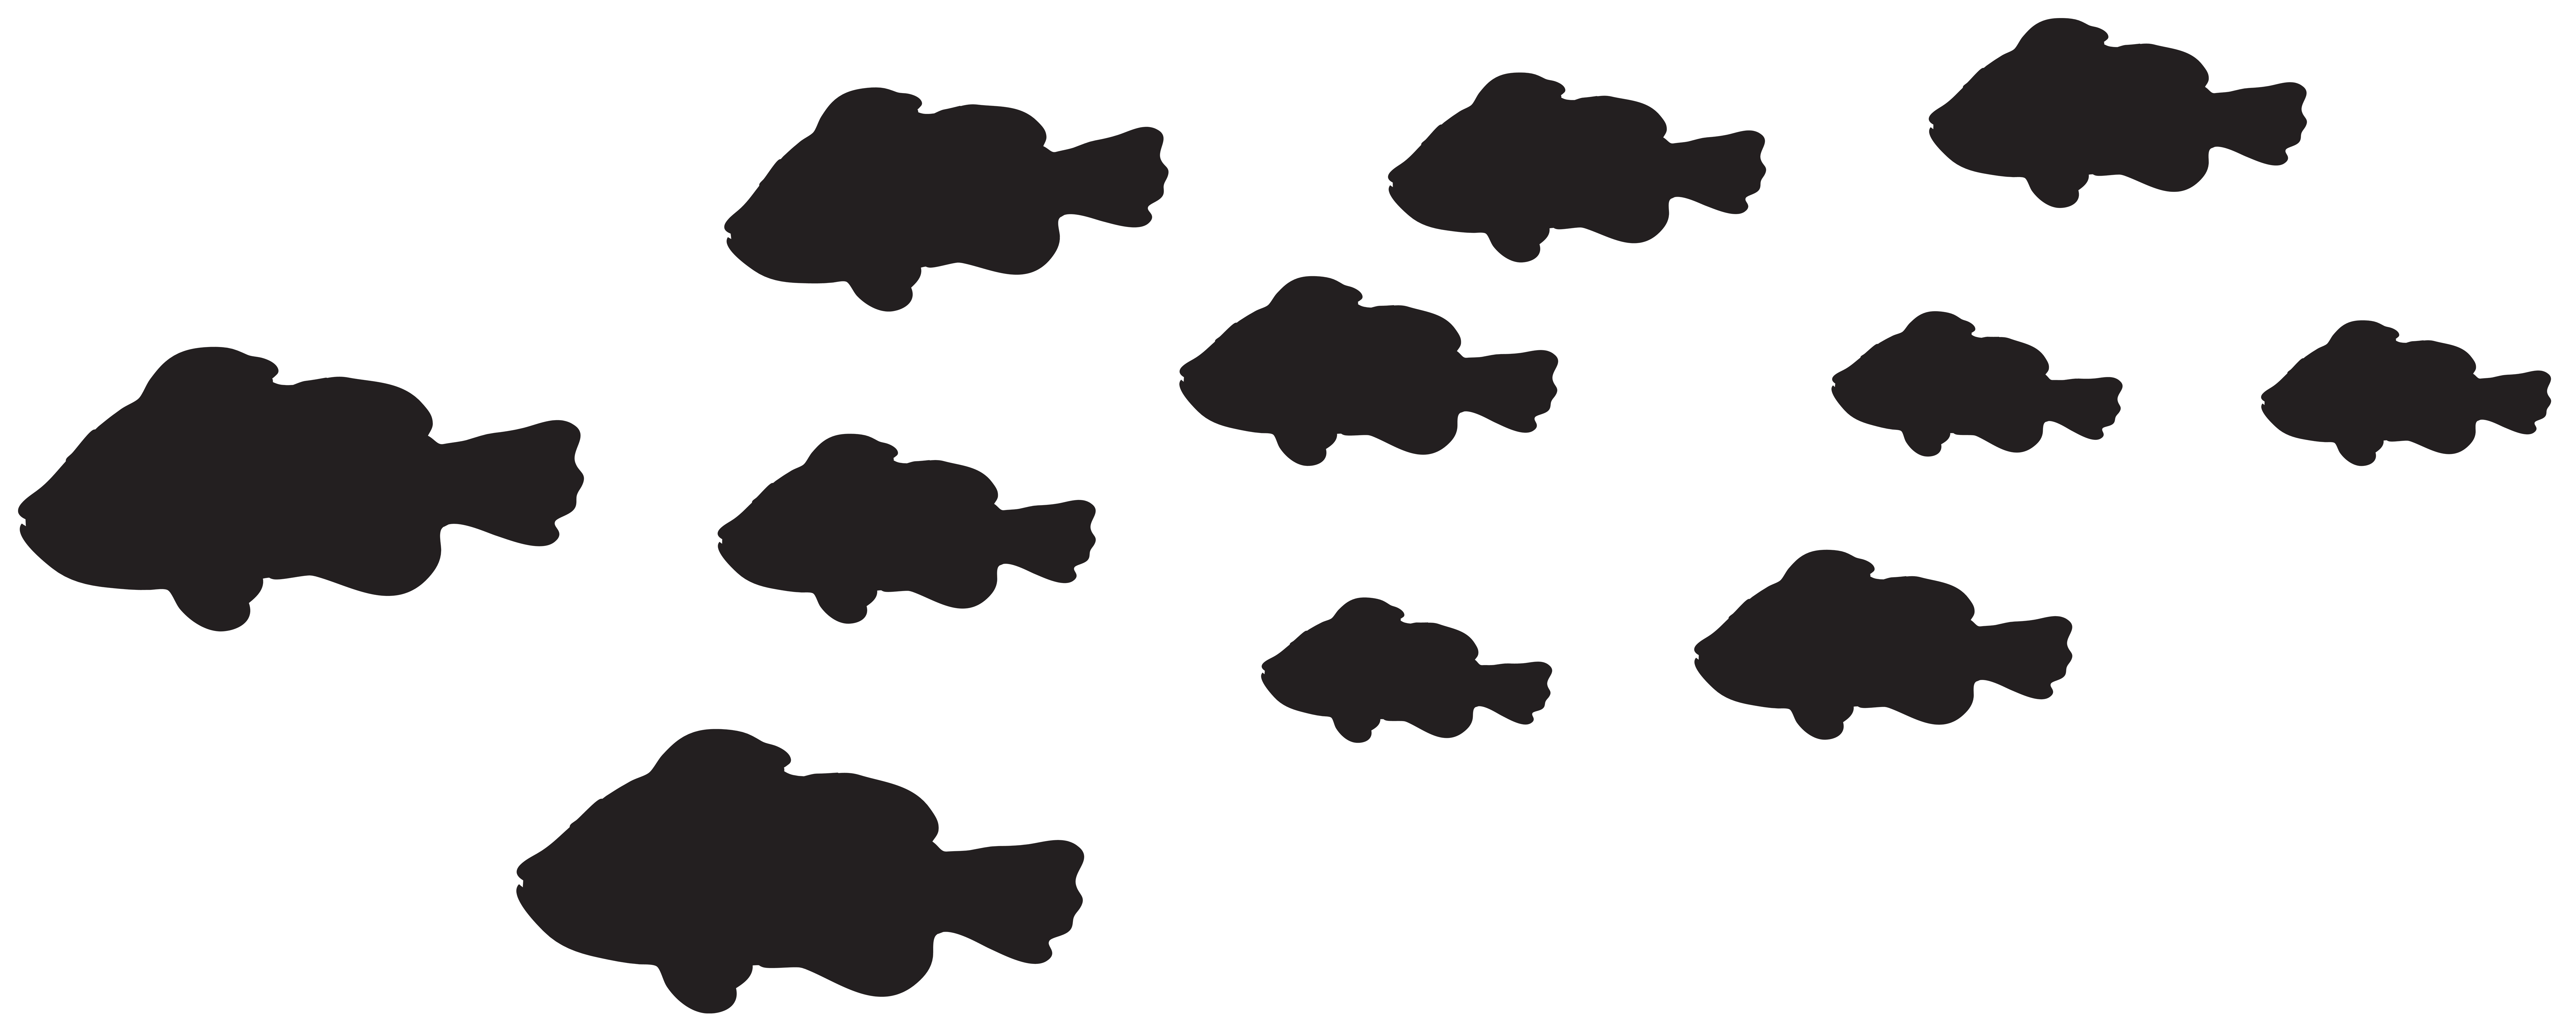 Cloud clipart silhouette. Fishes png clip art